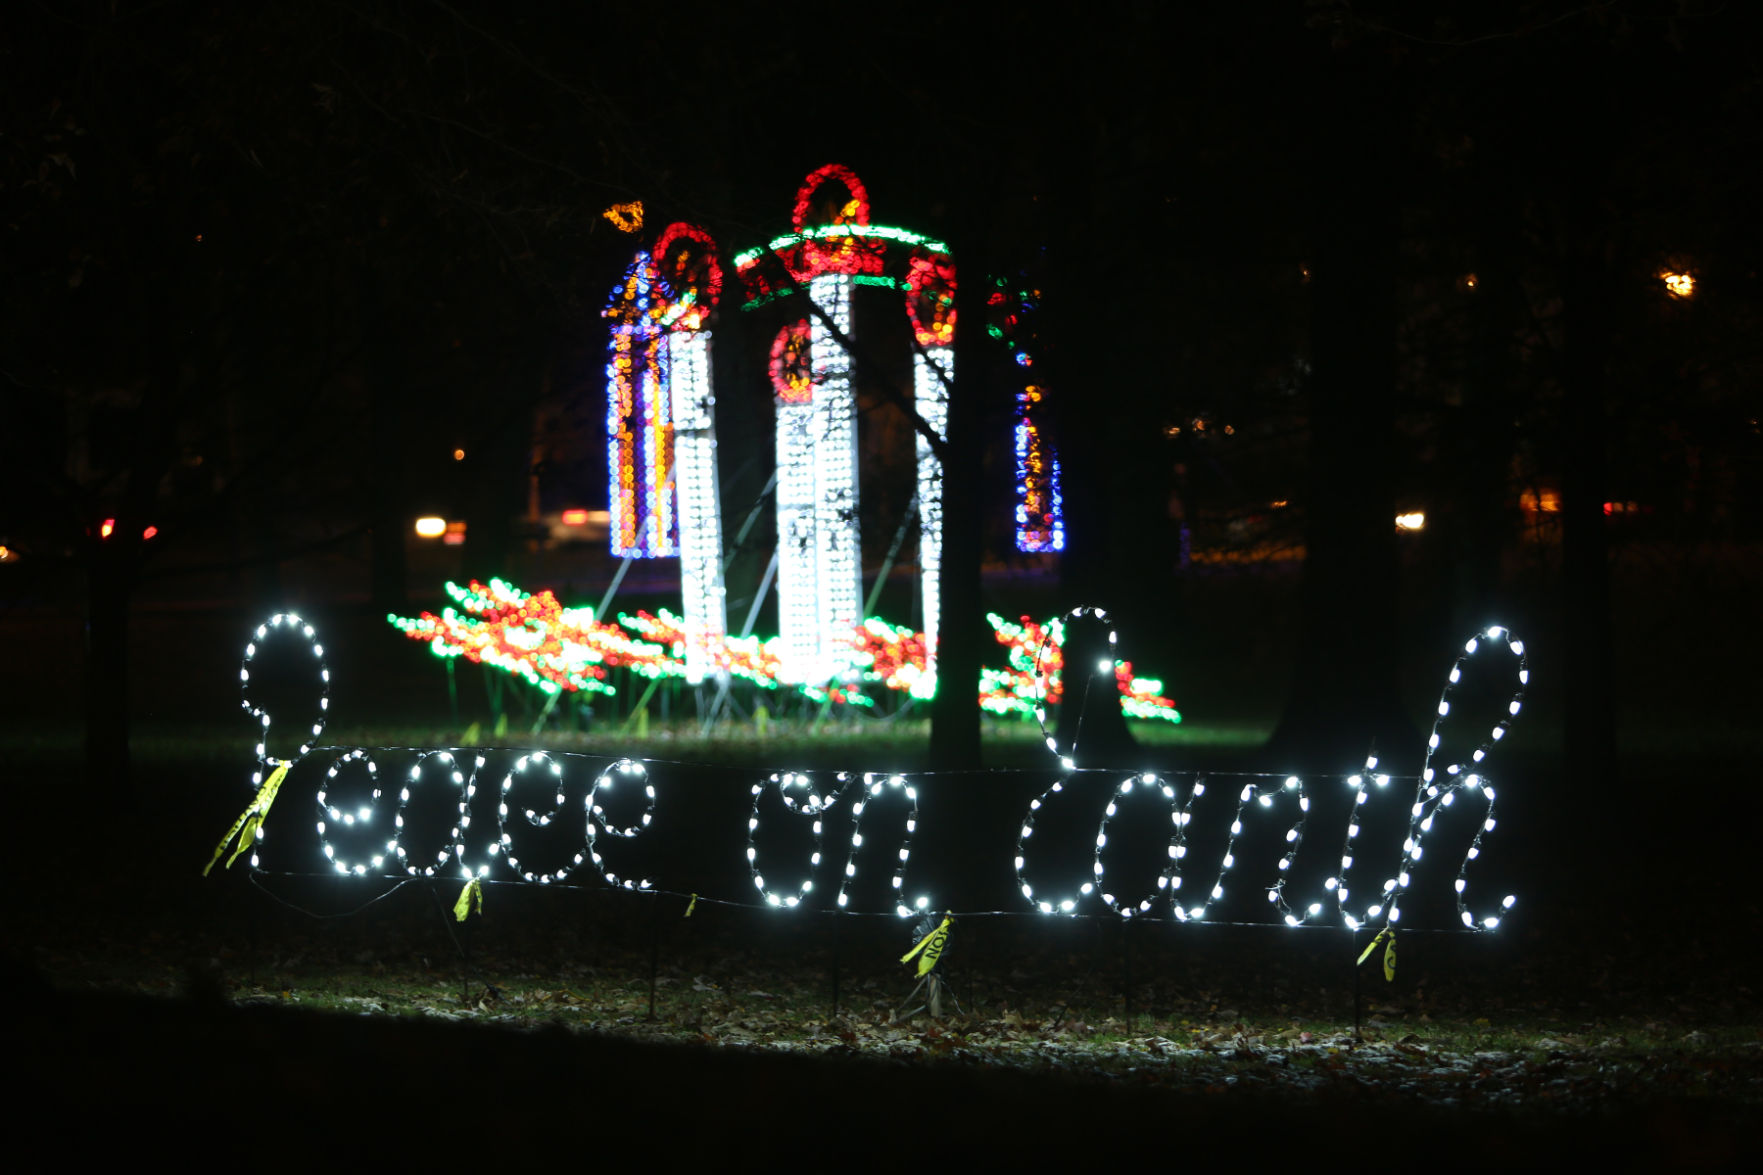 Check out local displays to celebrate Christmas | Features ...